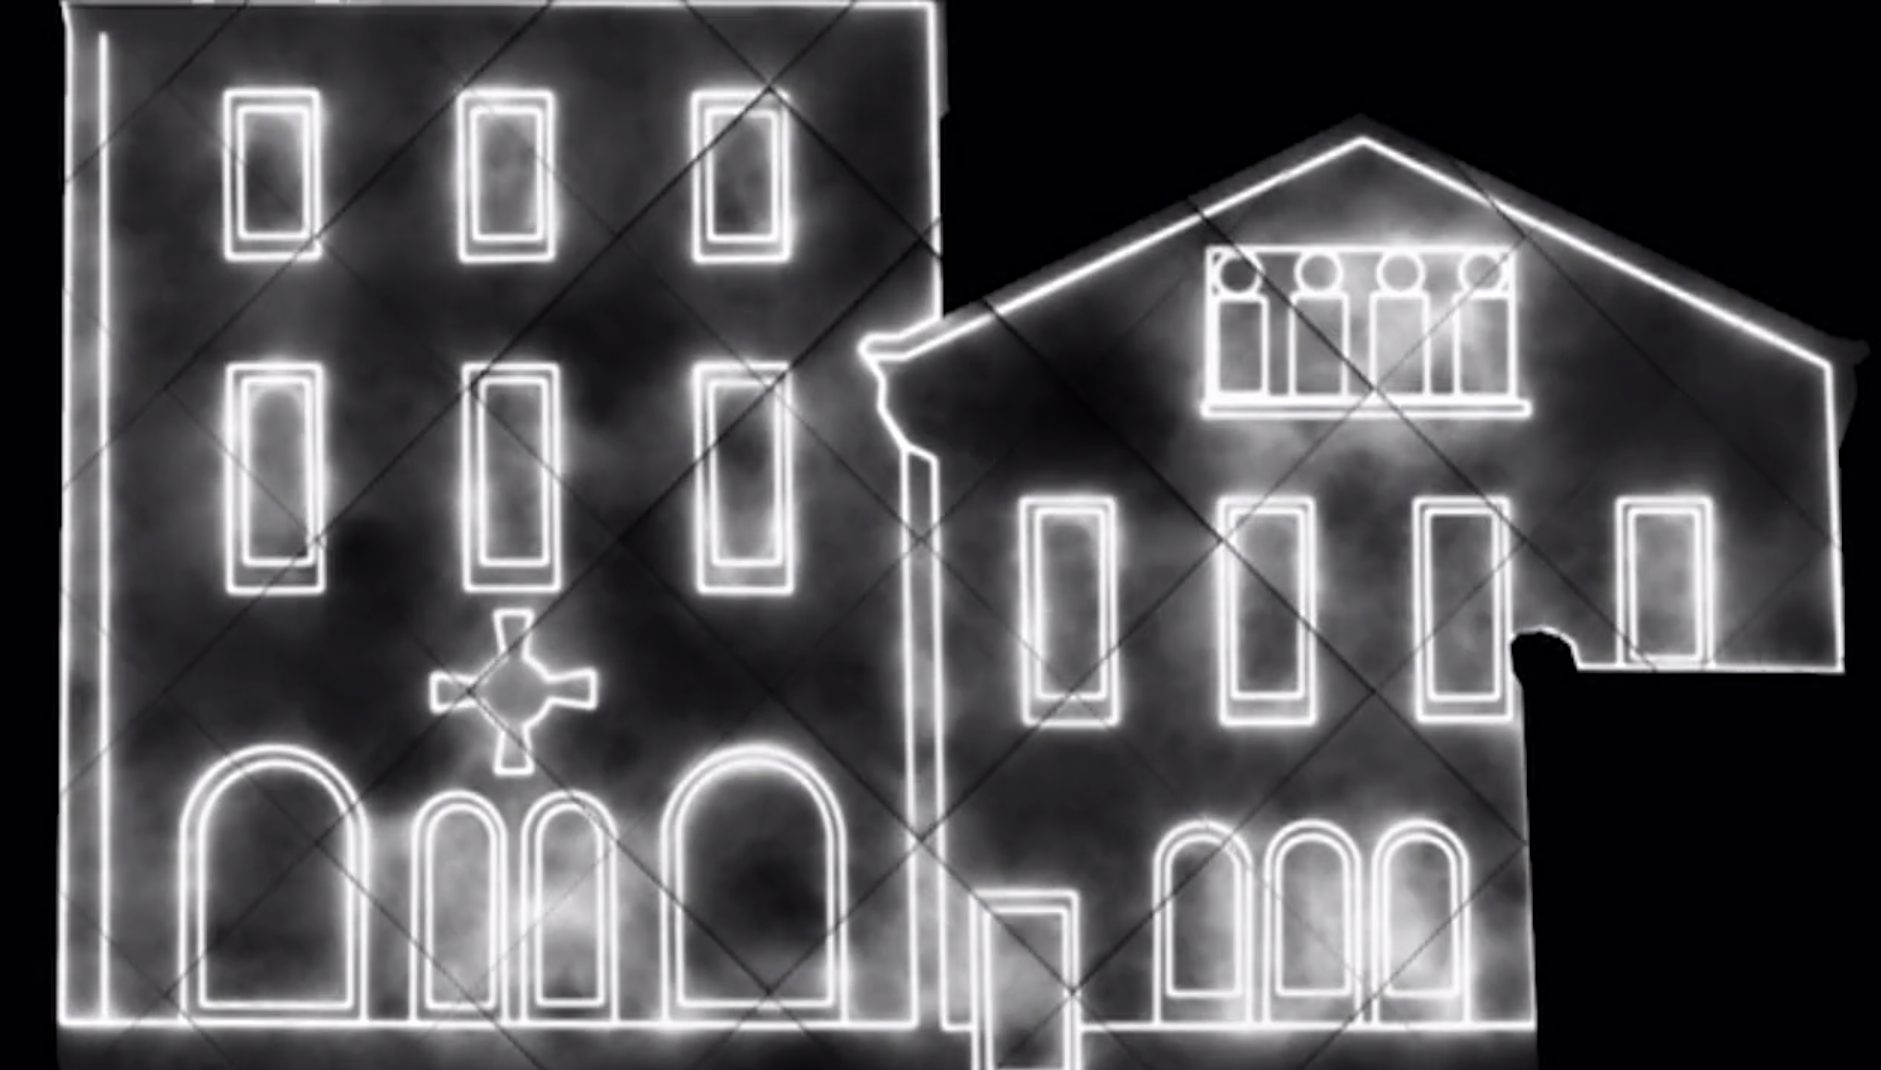 The Macallan - Projection Mapping 5